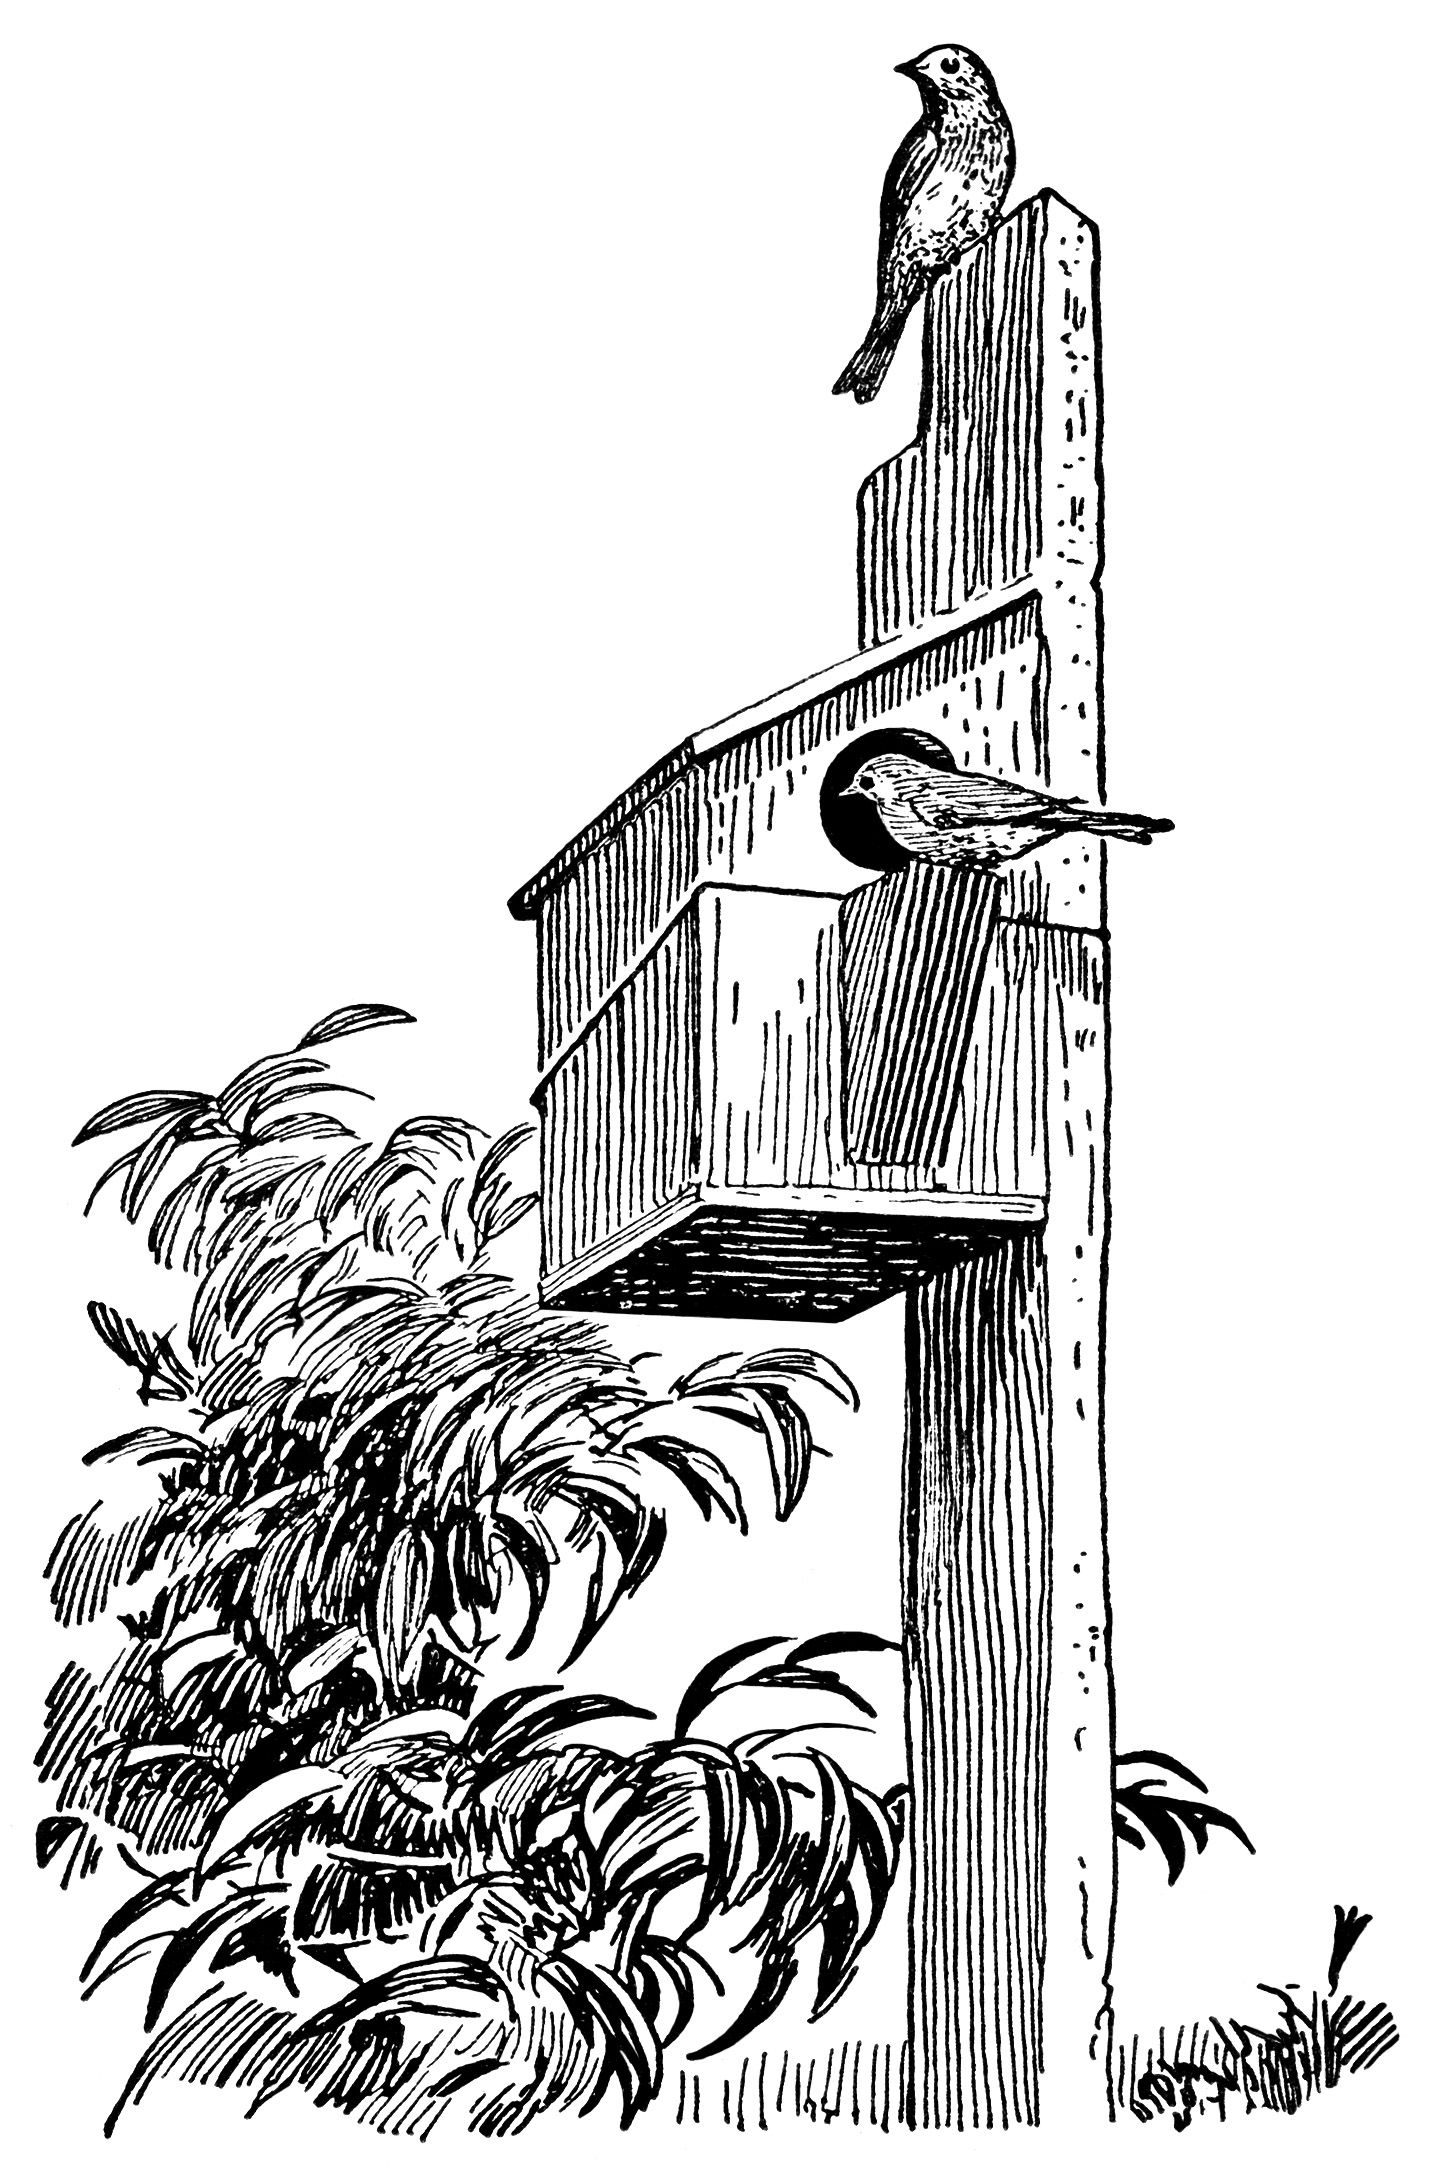 free bird house coloring pages | Birds and Birdhouse ~ Free Vintage Clip Art | Black and ...